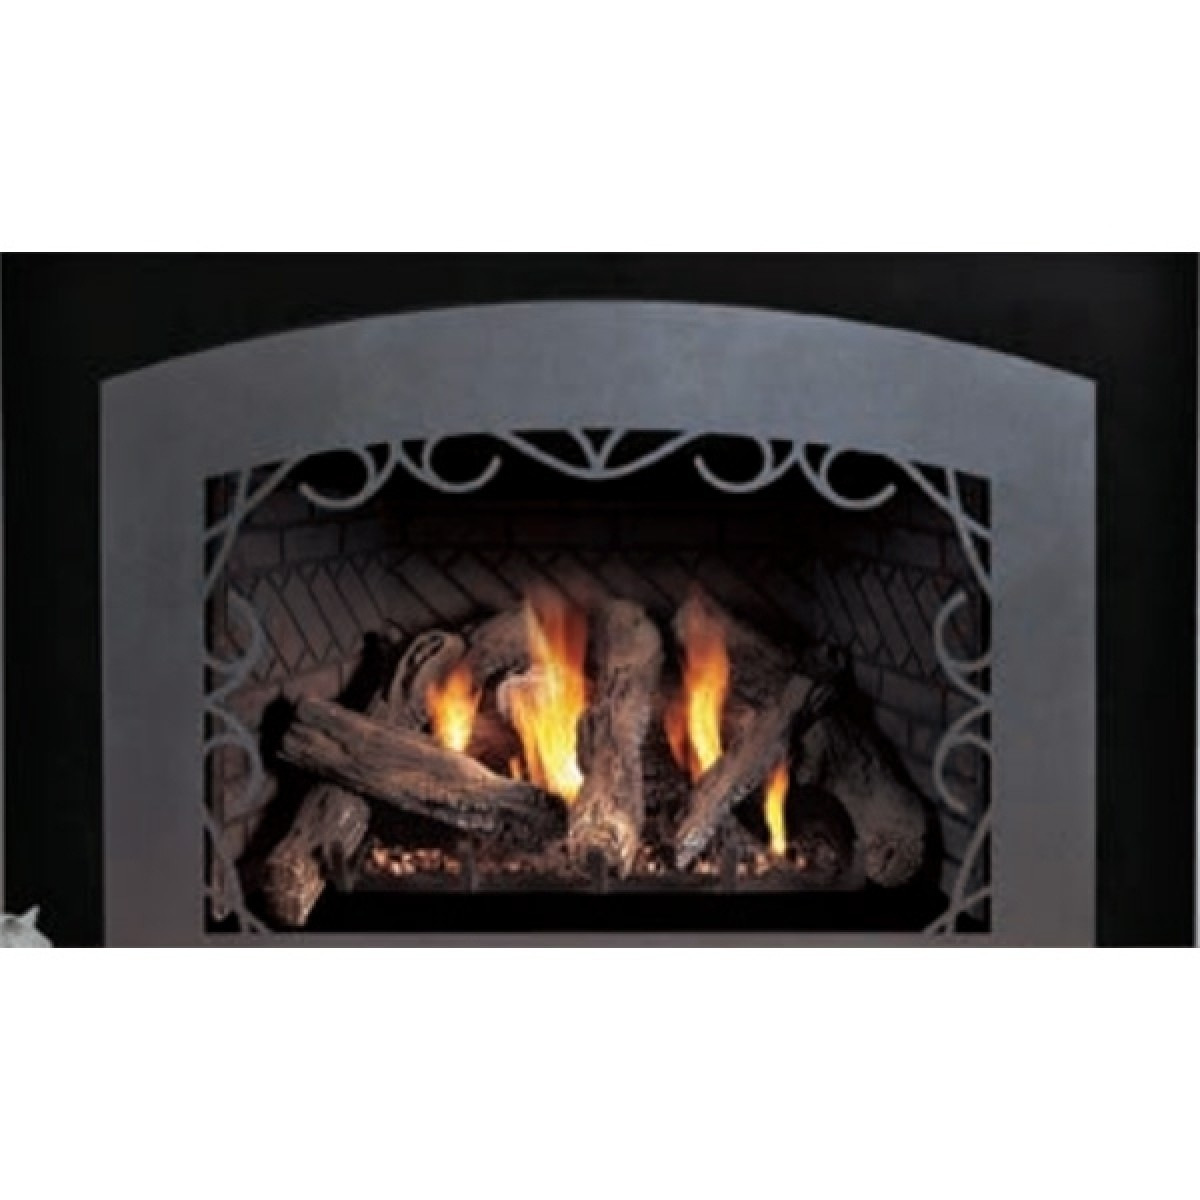 Propane Fireplace Inserts Empire Dxt30in91p Luxury Innsbrook Traditional Dv Medium Propane Lp Fireplace Insert Mf Remote